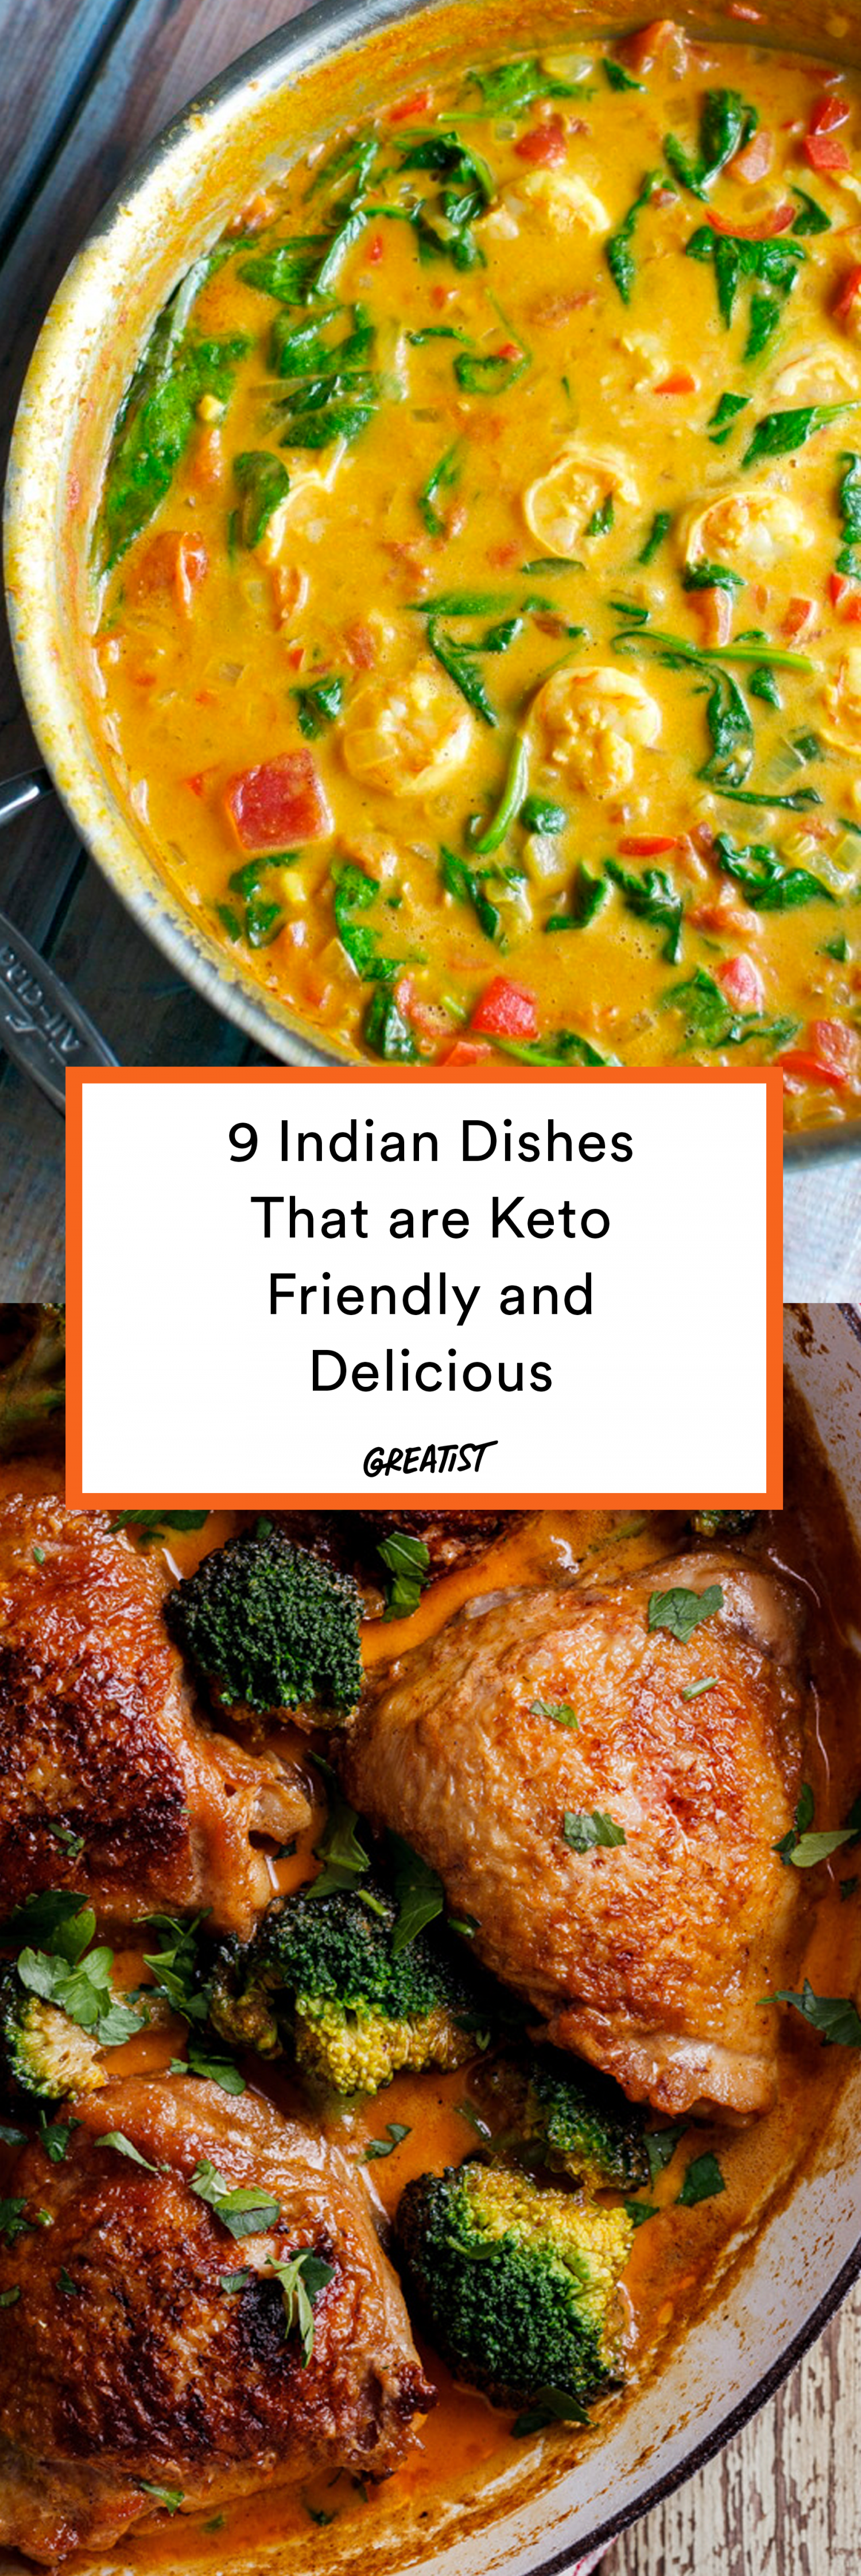 9 Indian Dishes That Are Almost Always Keto-Friendly Cruise this list of staple Indian dishes that are totally safe for low-carb diets. These keto recipes will quickly become part of the weekly dinner rotation. #vegetariandish